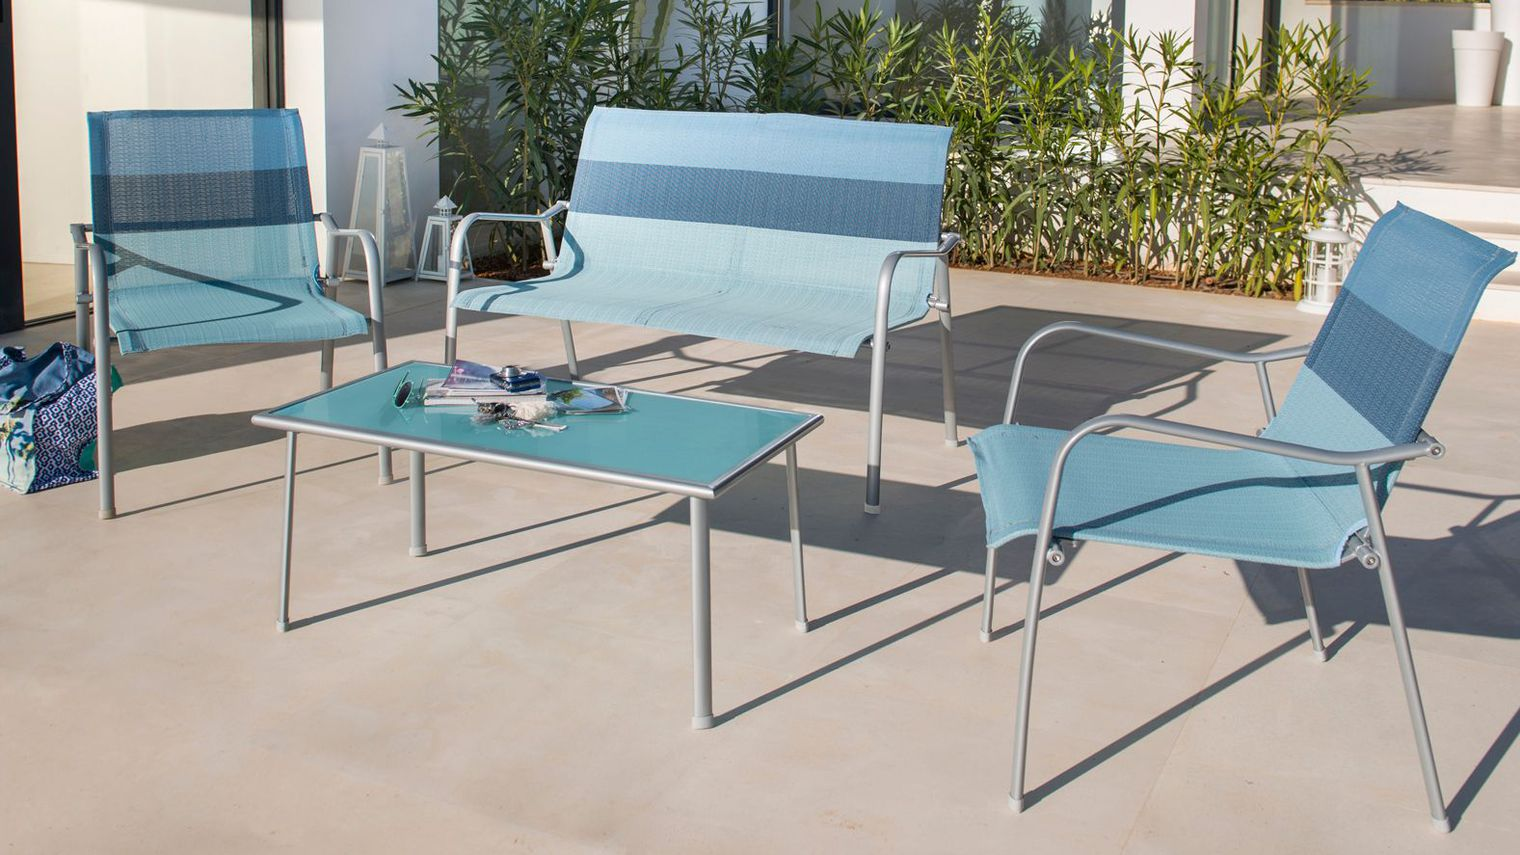 Table salon de jardin en solde royal sofa id e de for Acheter table de jardin pas cher